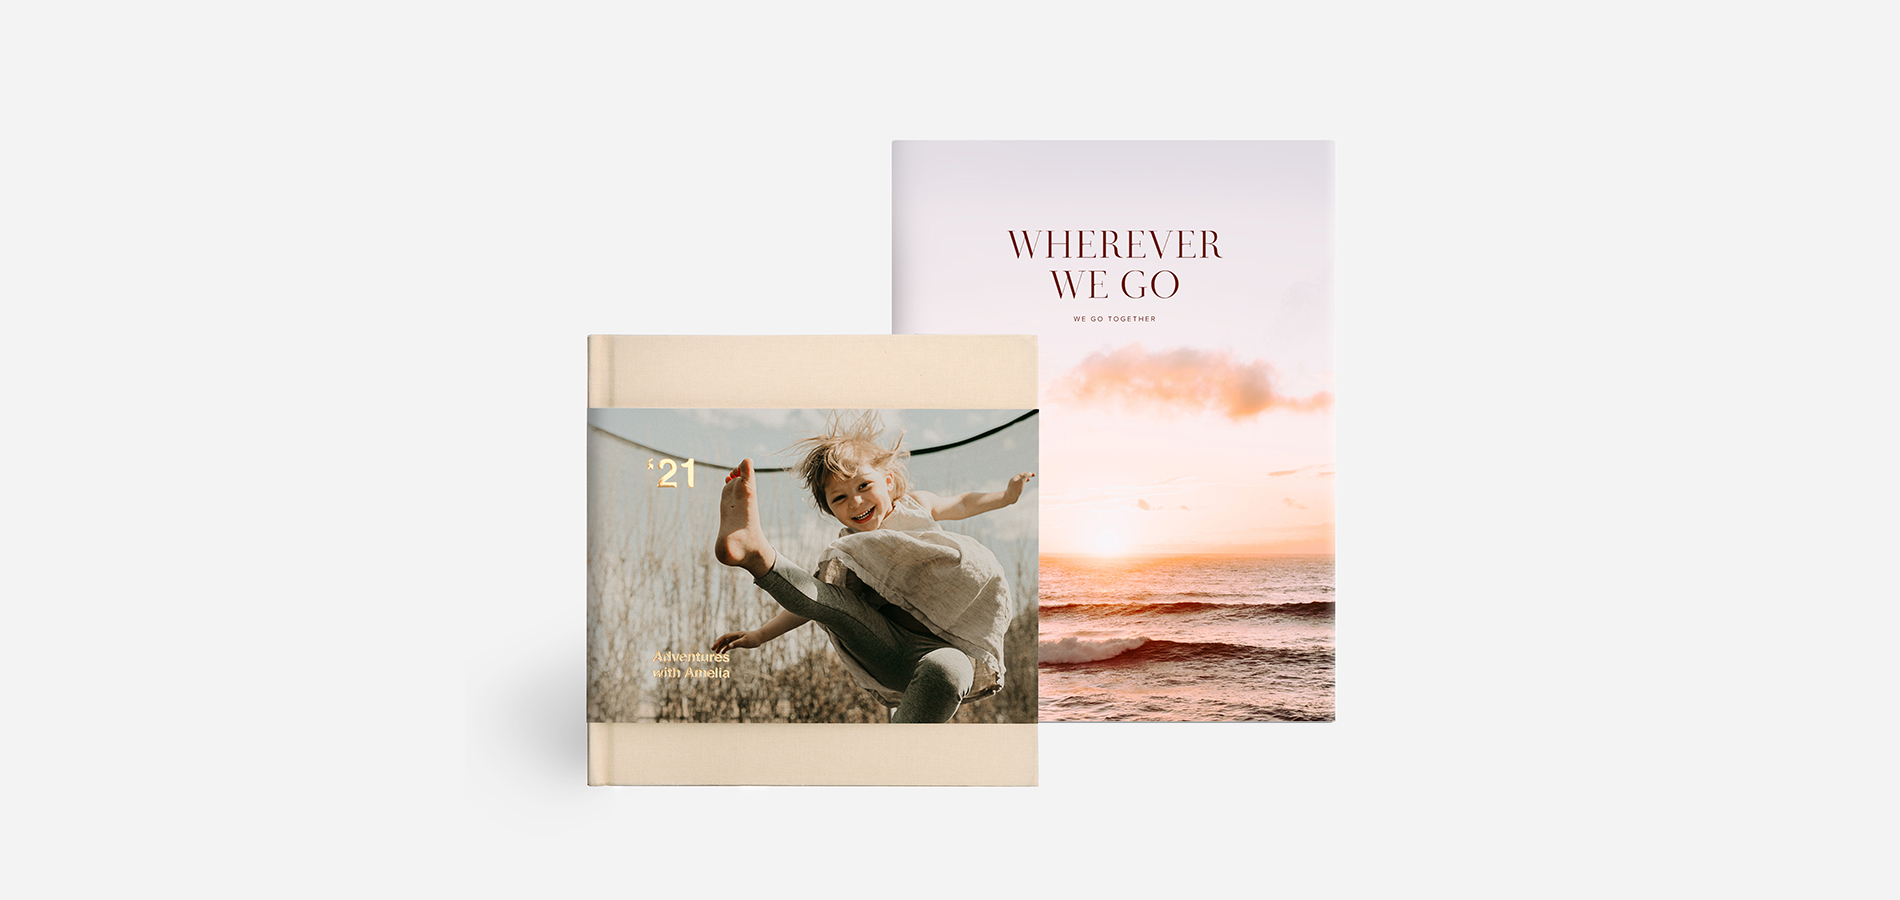 Artifact Uprising Hardcover Photo book with partial dust jacket and digital foil lettering next to Artifact Uprising Hardcover Photo Book with full dust jacket featuring image of ocean sunset